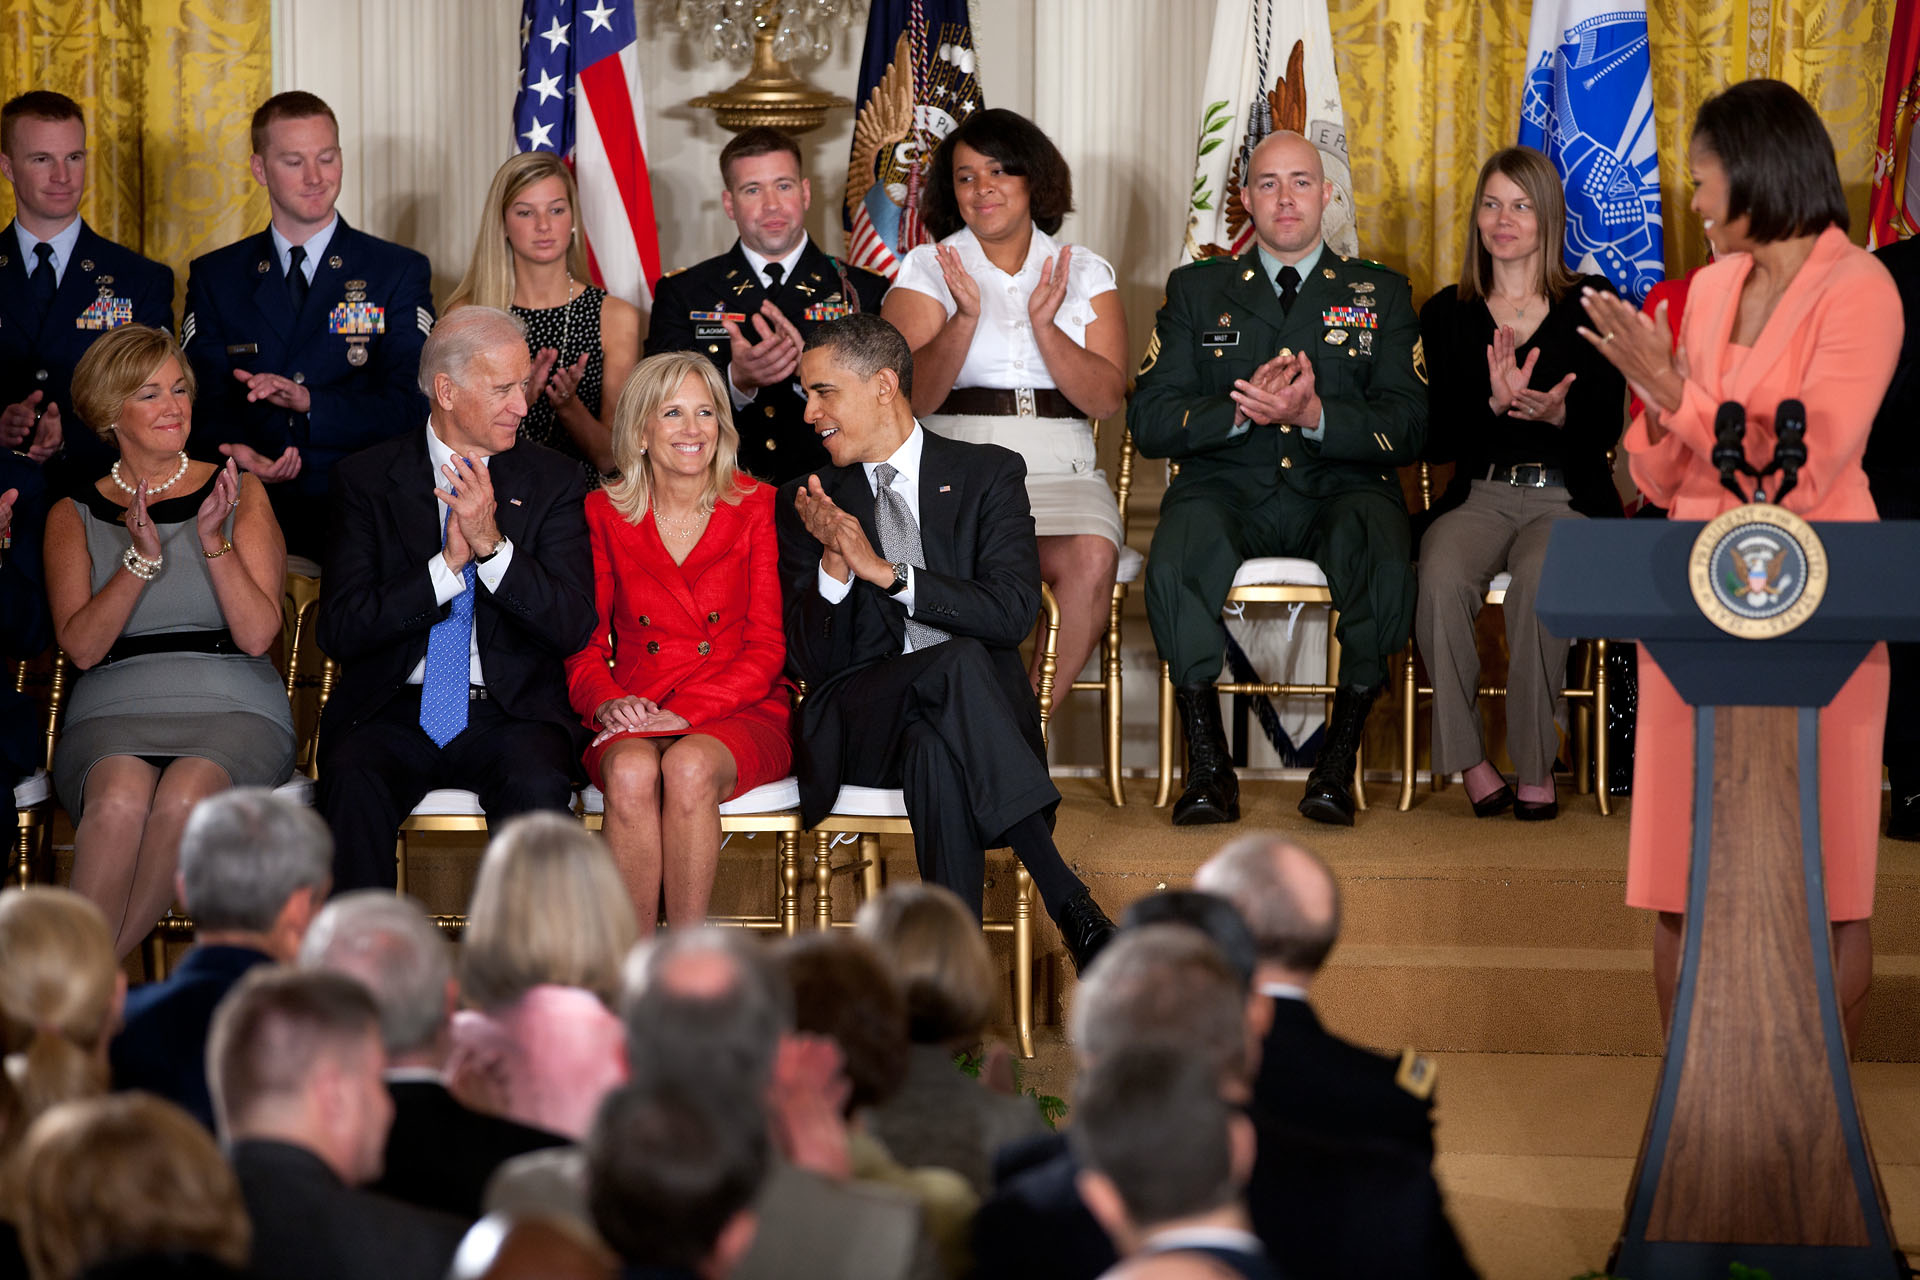 President Barack Obama, First Lady Michelle Obama, and Vice President Joe Biden acknowledge Dr. Jill Biden during the launch of the Joining Forces